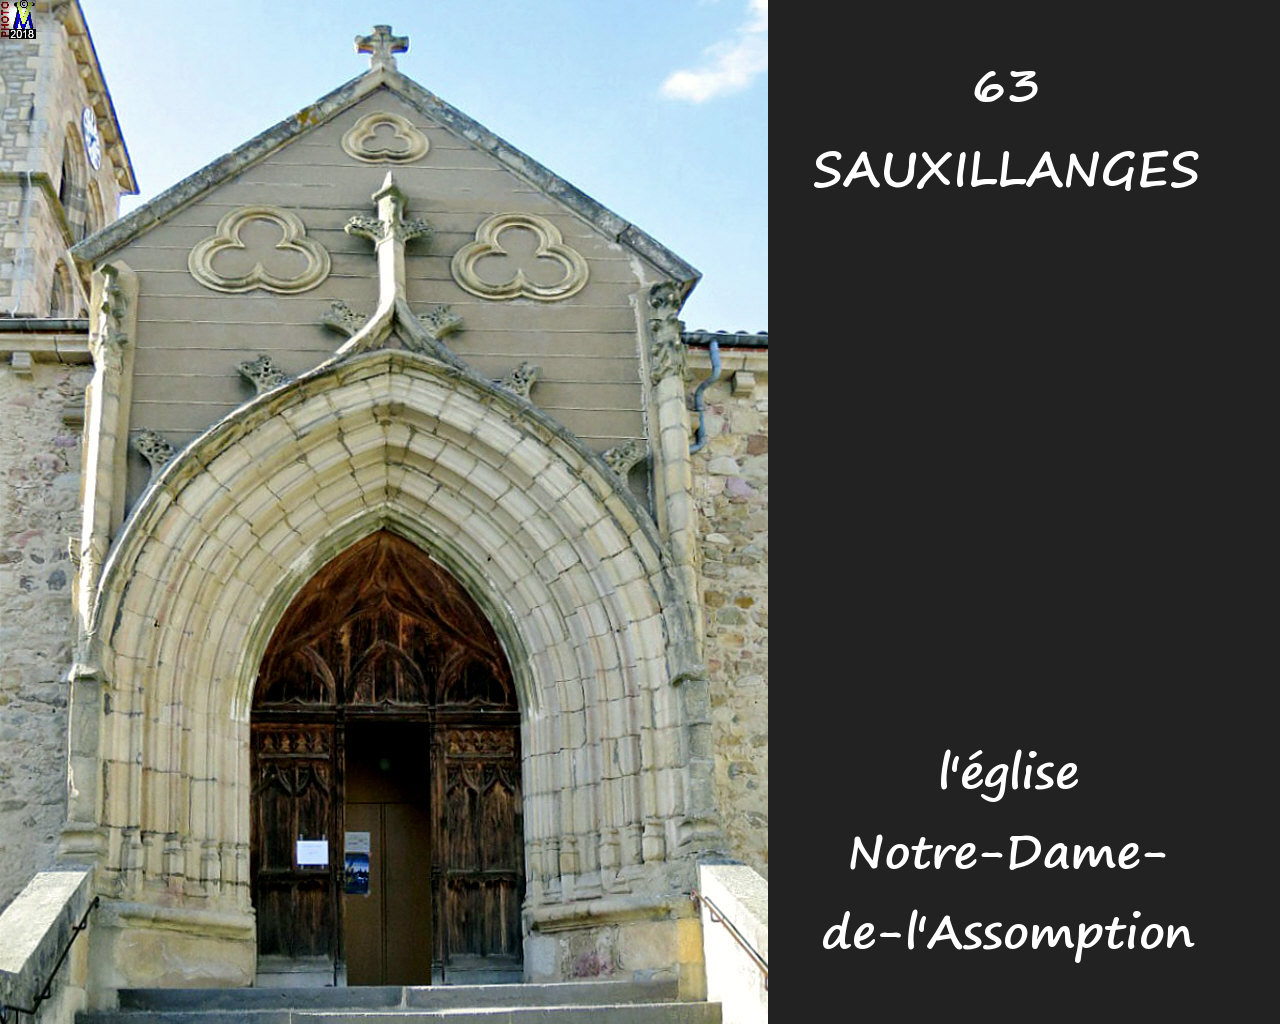 63SAUXILLANGES_eglise_112.jpg